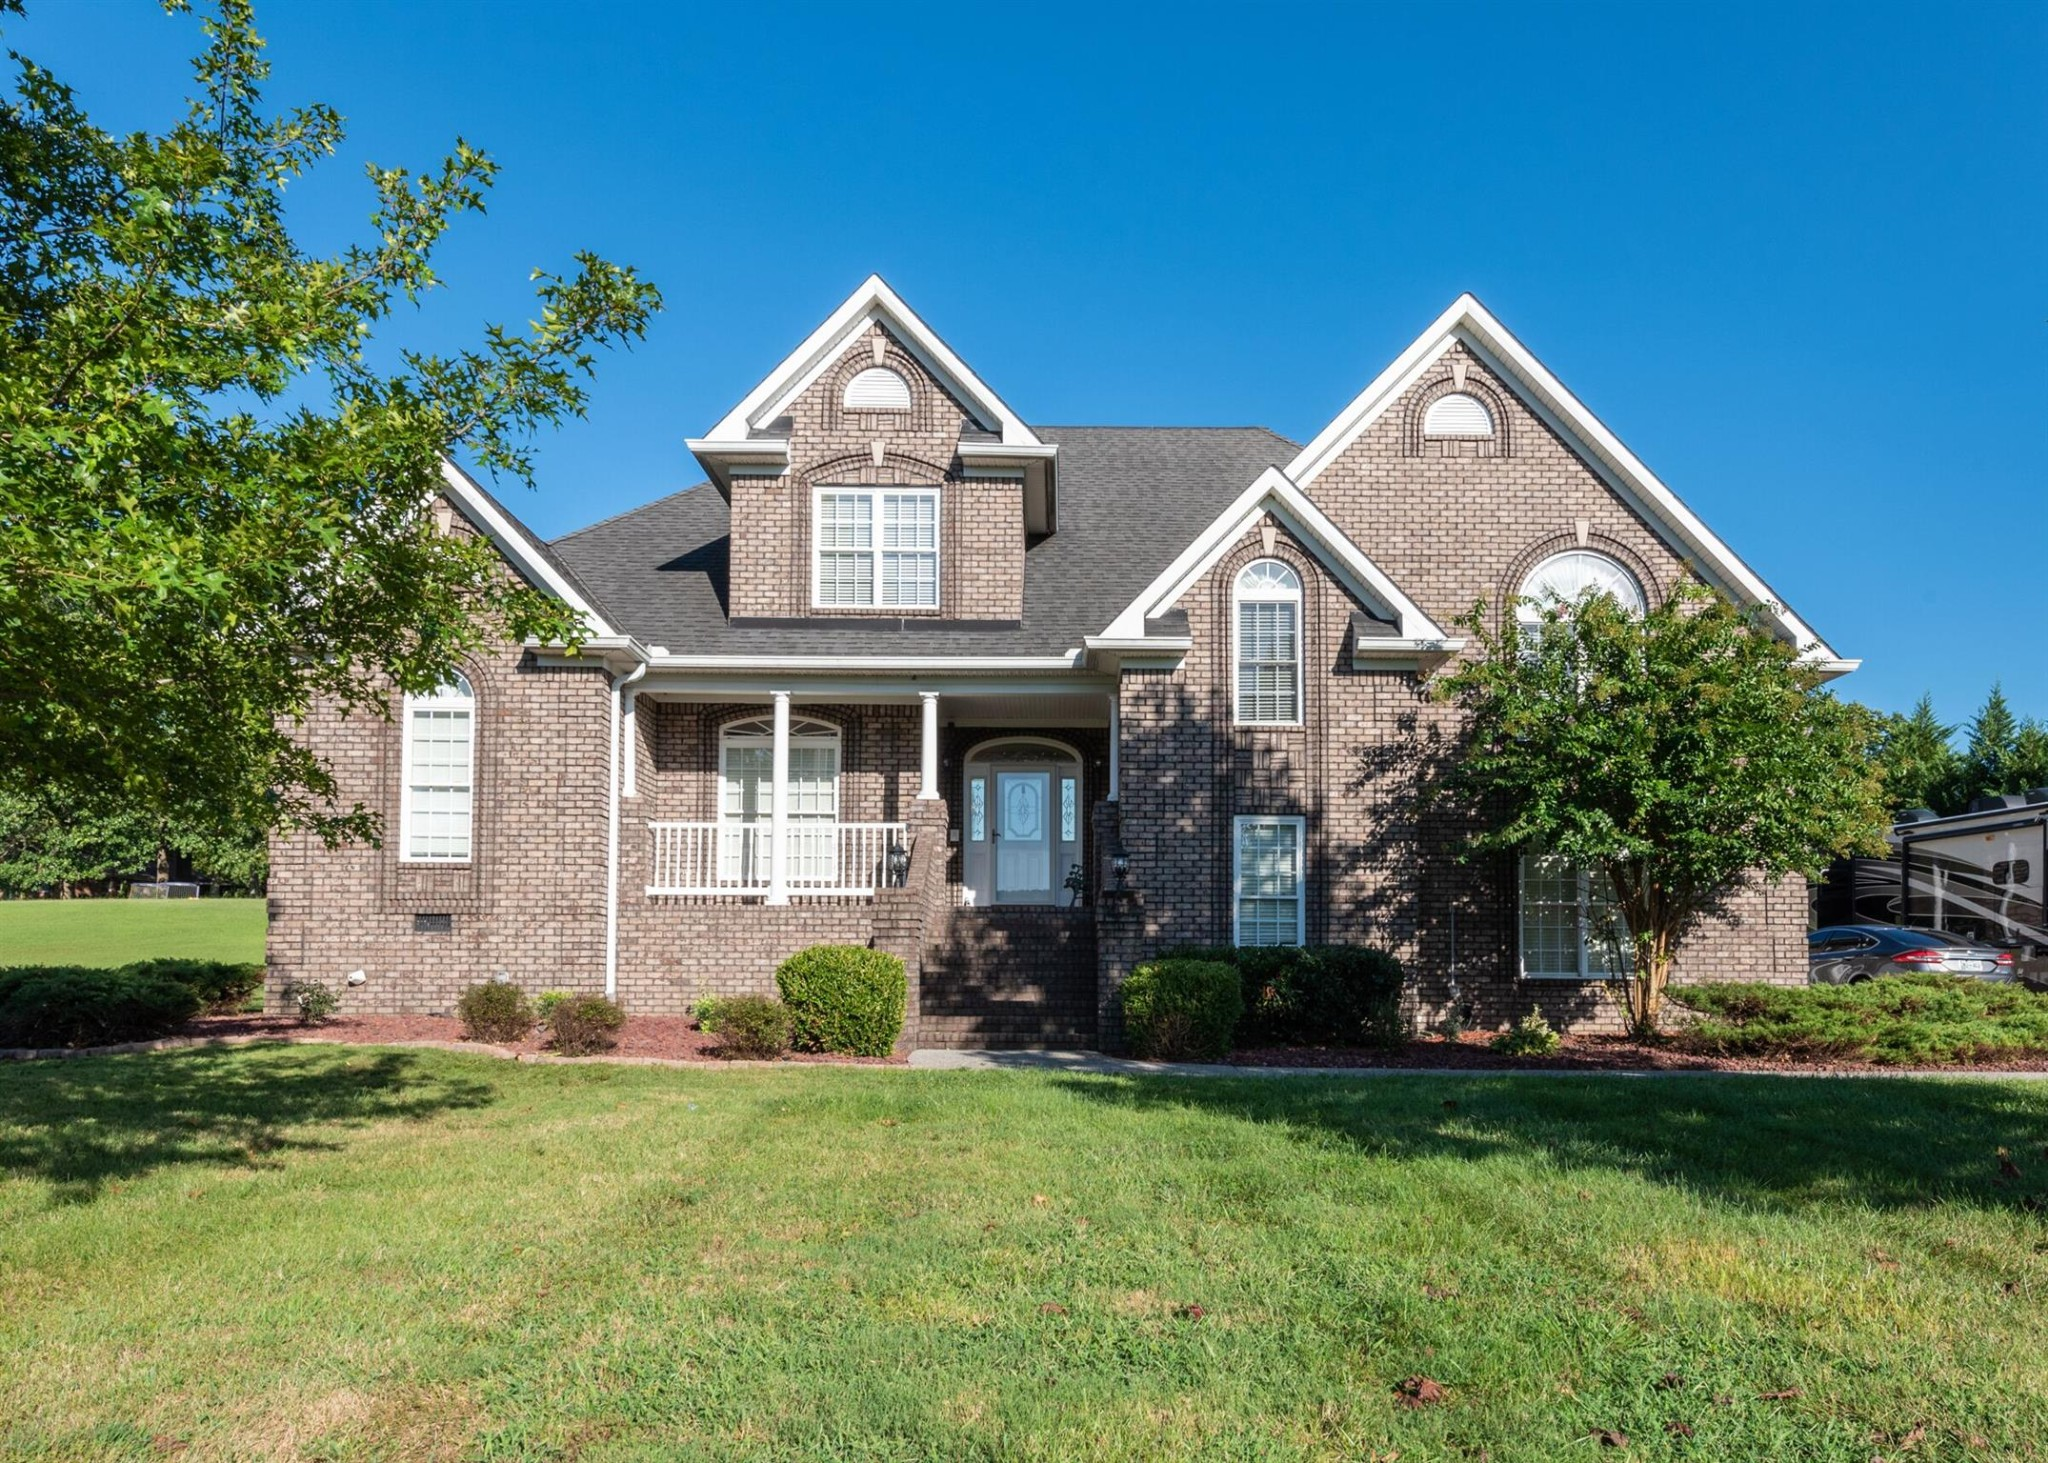 1012 Valleydale Ave Property Photo - Cross Plains, TN real estate listing